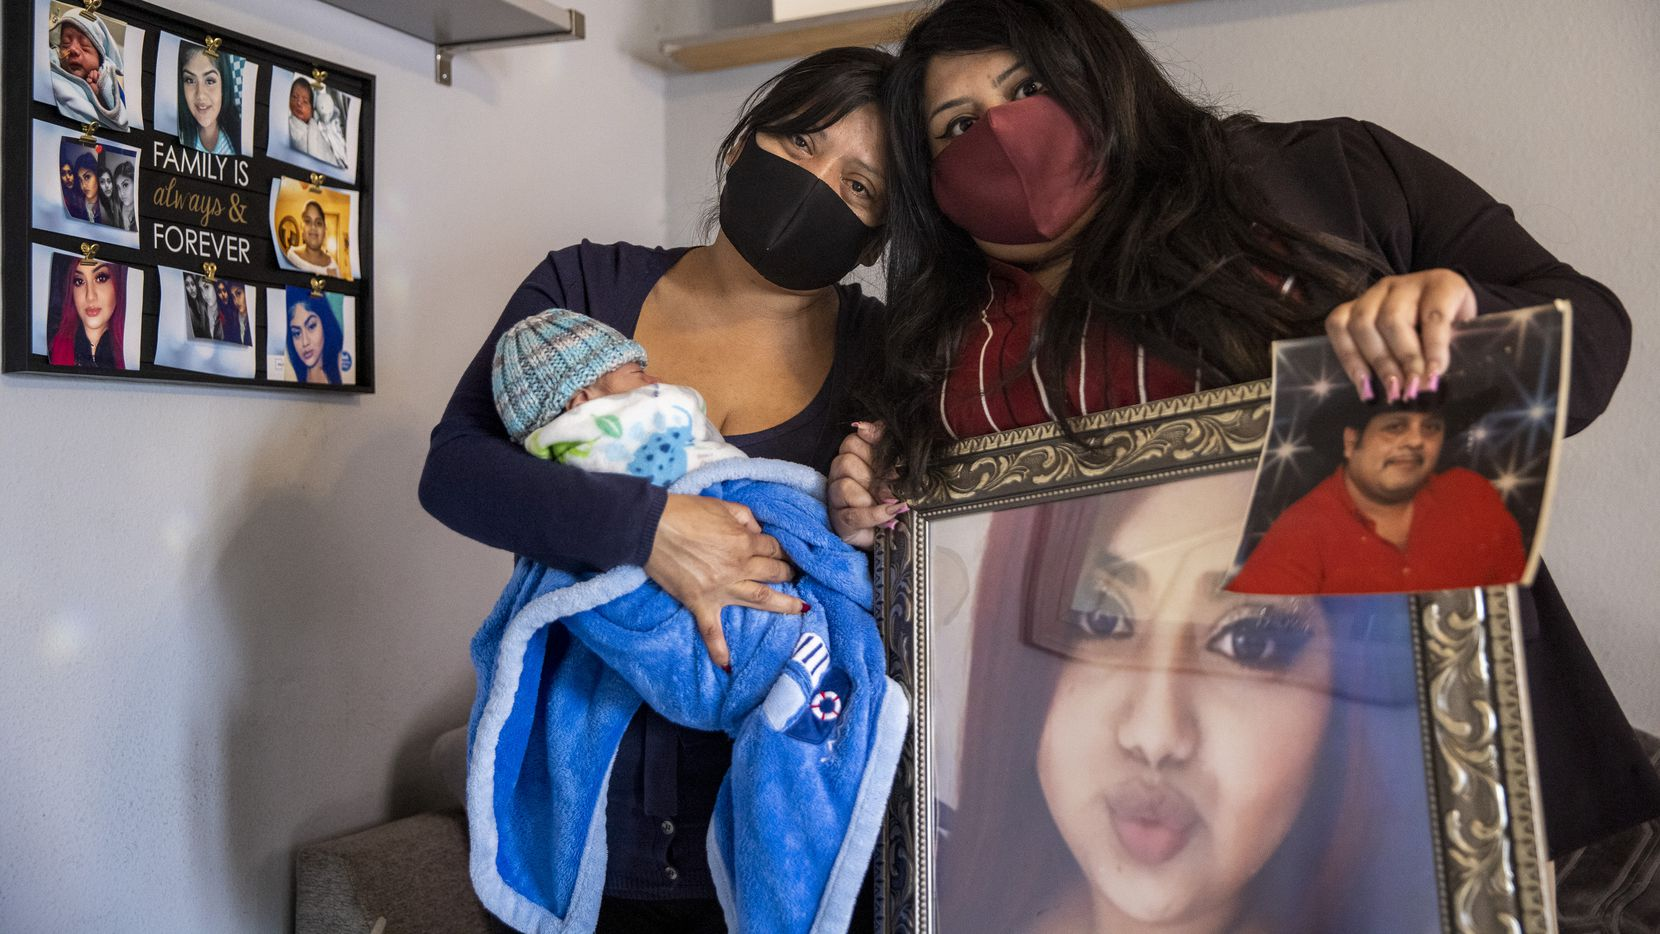 Lucy Palacios (right), 23, holds photos of her deceased sister, Nely, and deceased father, Miguel, while posing for a portrait with her mother, Miriam, and her 2-month-old nephew, Isaiah, at their home in East Dallas on March 2, 2021. Miriam's 22-year-old daughter and Lucy's sister, Nely, died from complications of COVID-19 shortly after her son was born through an emergency C-section when Nely was intubated. Her father, Miguel, also died shortly after being hospitalized for COVID-19.